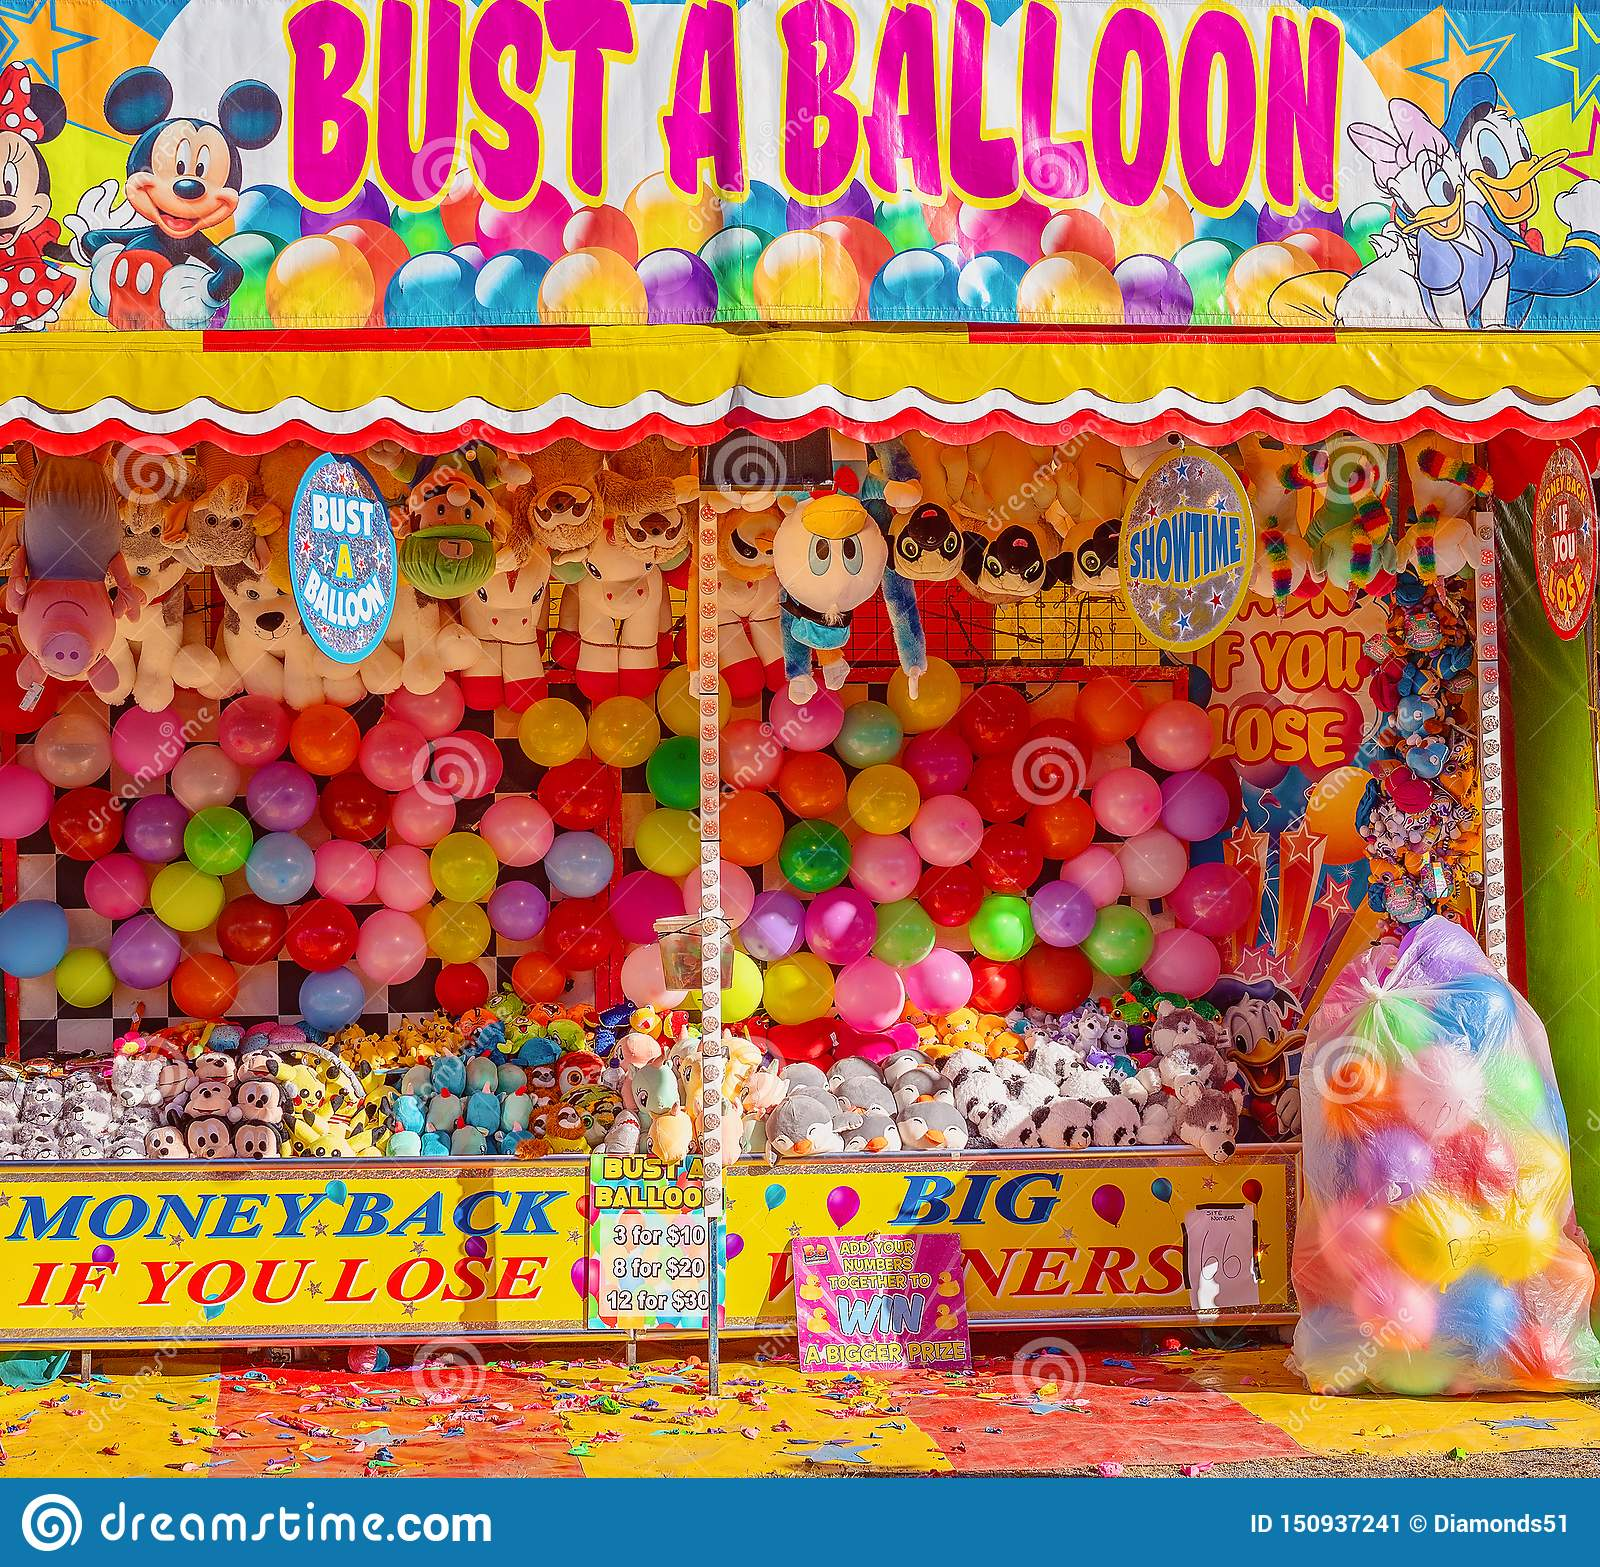 Busting Balloon Game At A Funfair